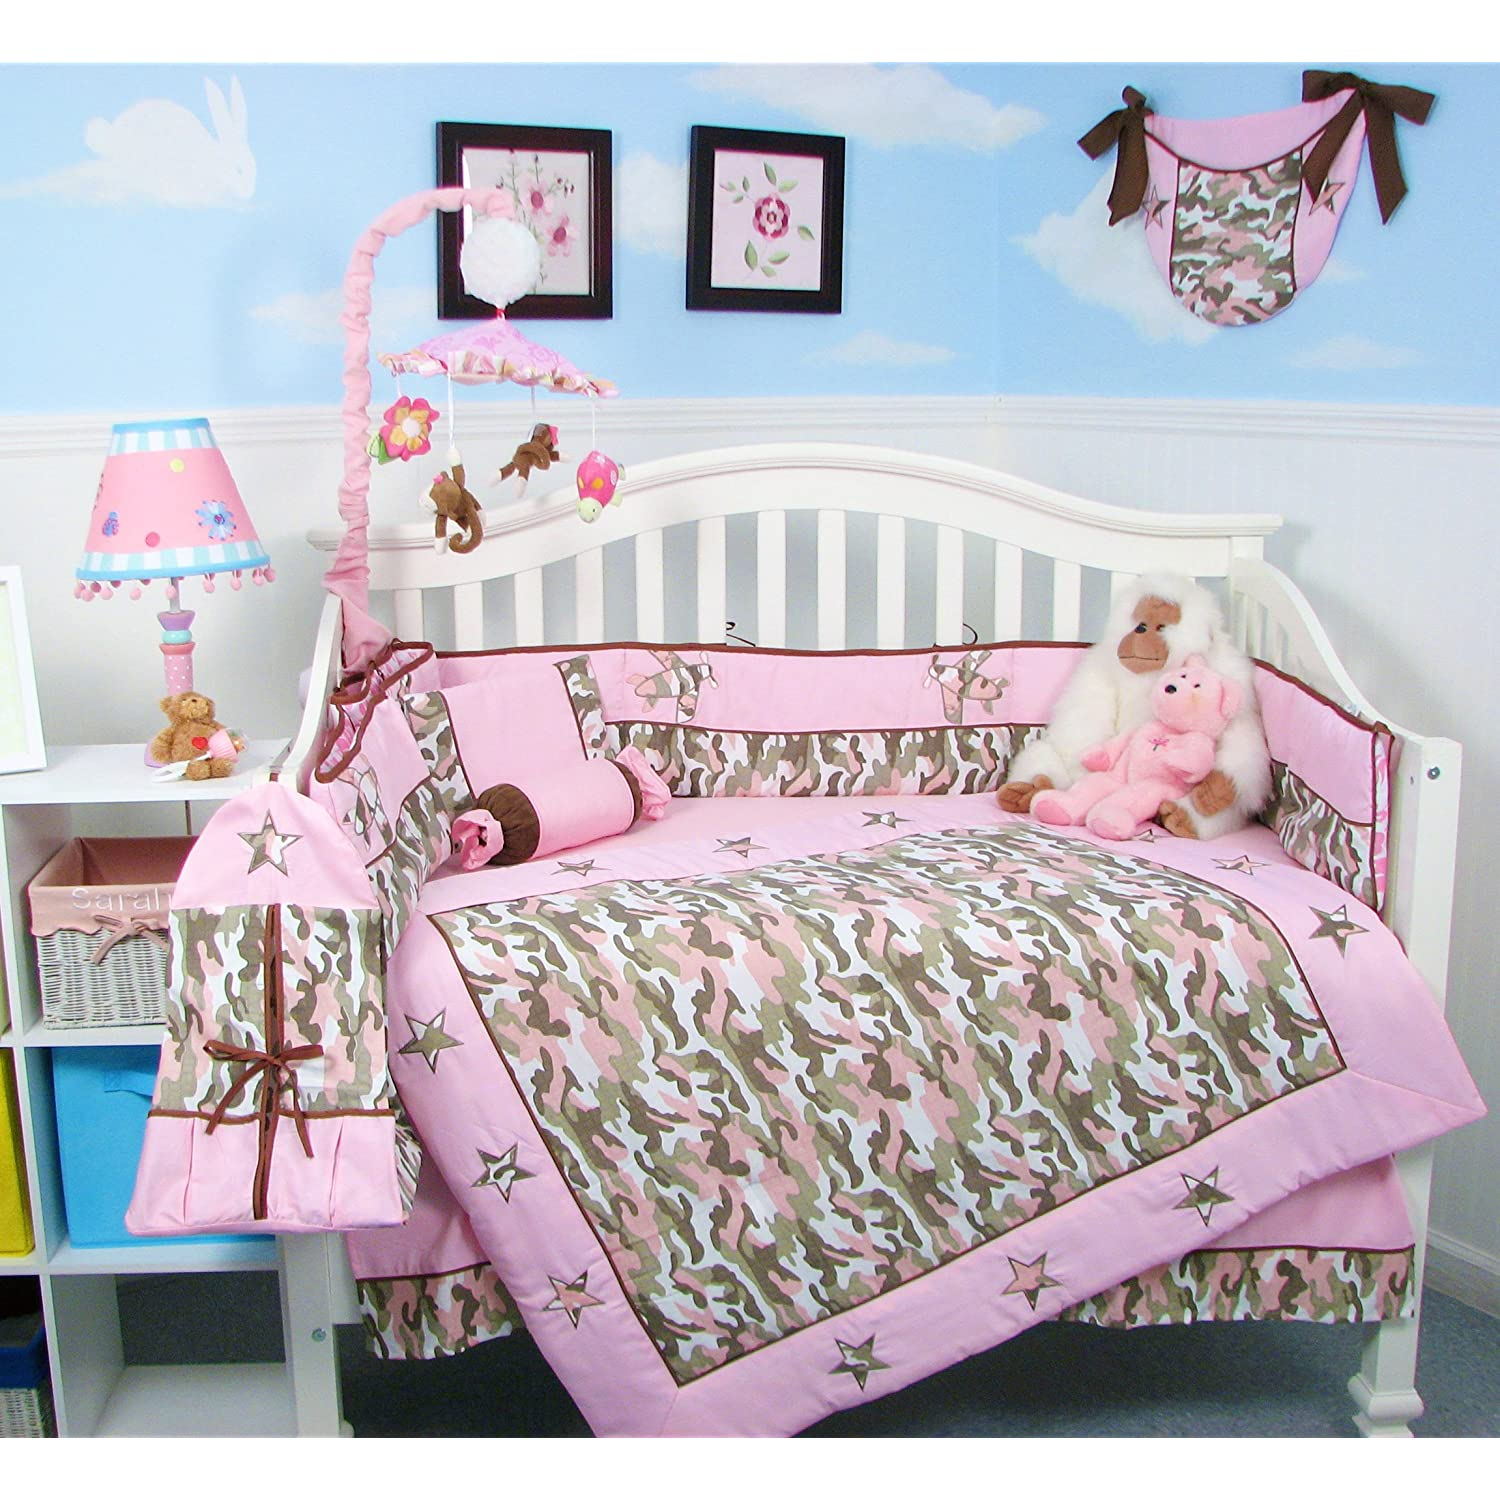 Pink Camo Bedroom Decor 17 Best Images About Camo Baby On Pinterest Cute Room Ideas